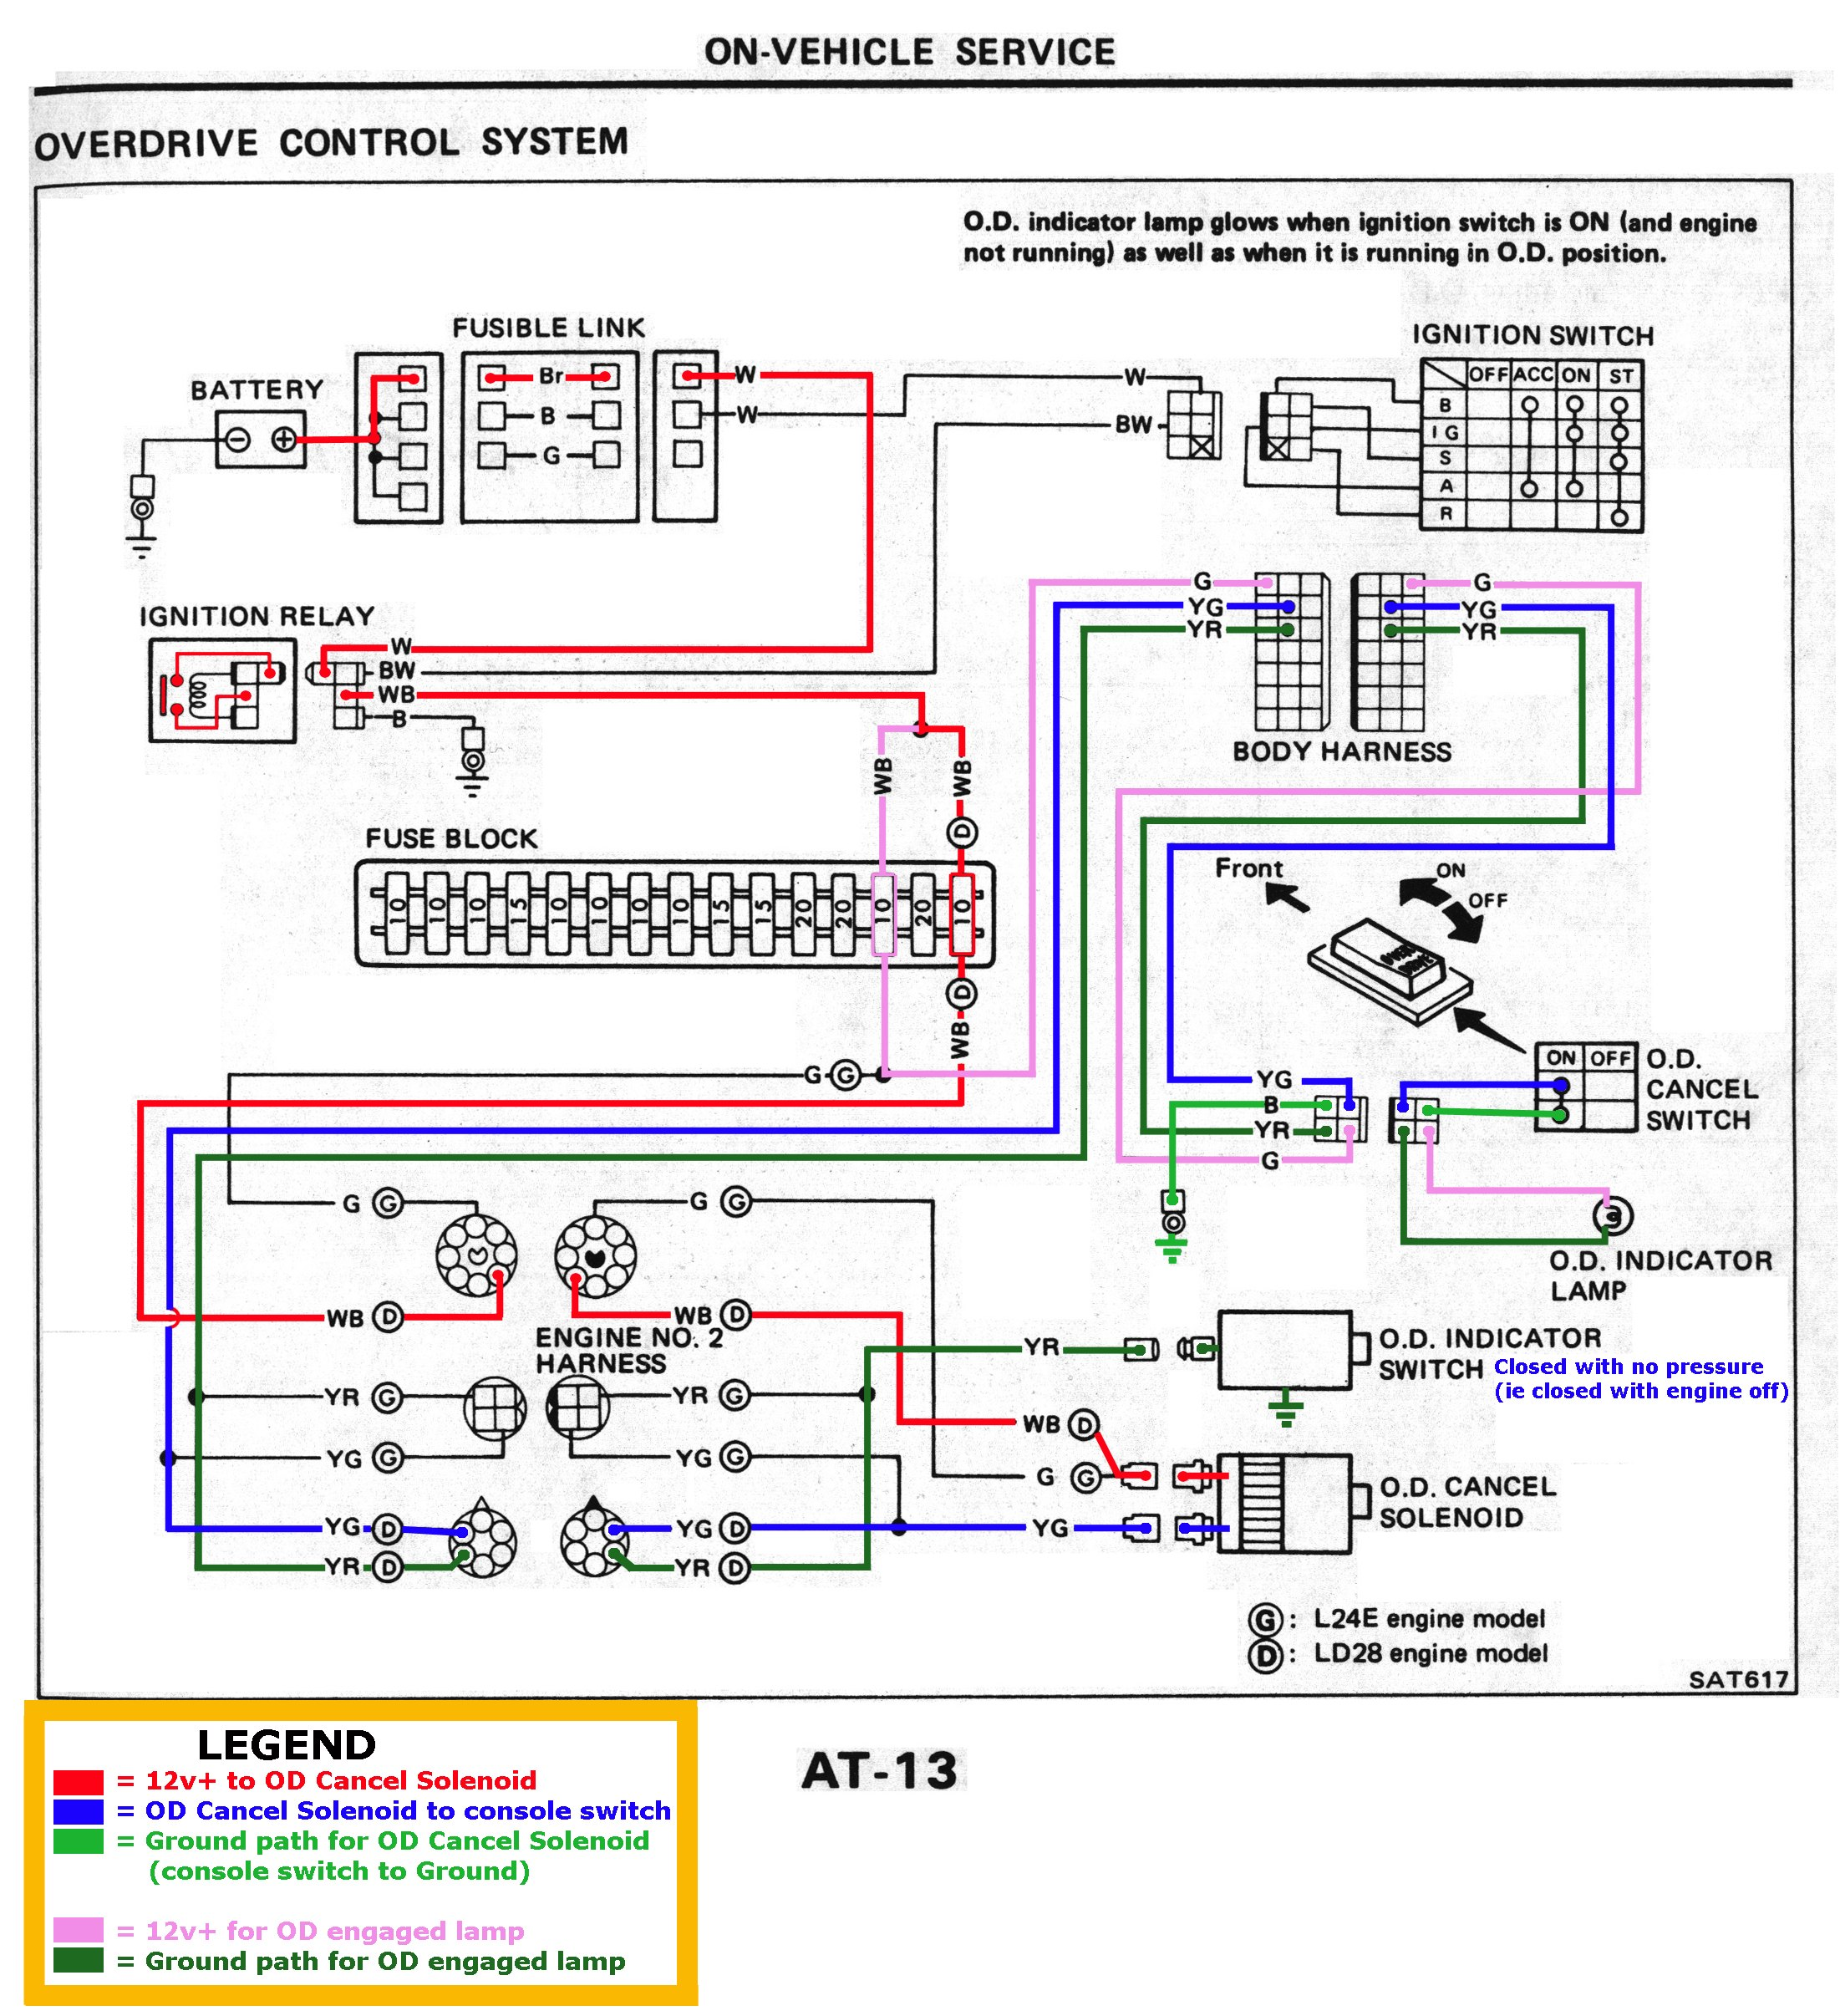 FSM_1983_AT 013 1b datsun 720 wiring diagram toyota corolla wiring diagram wiring Ford Alternator Wiring Diagram at webbmarketing.co